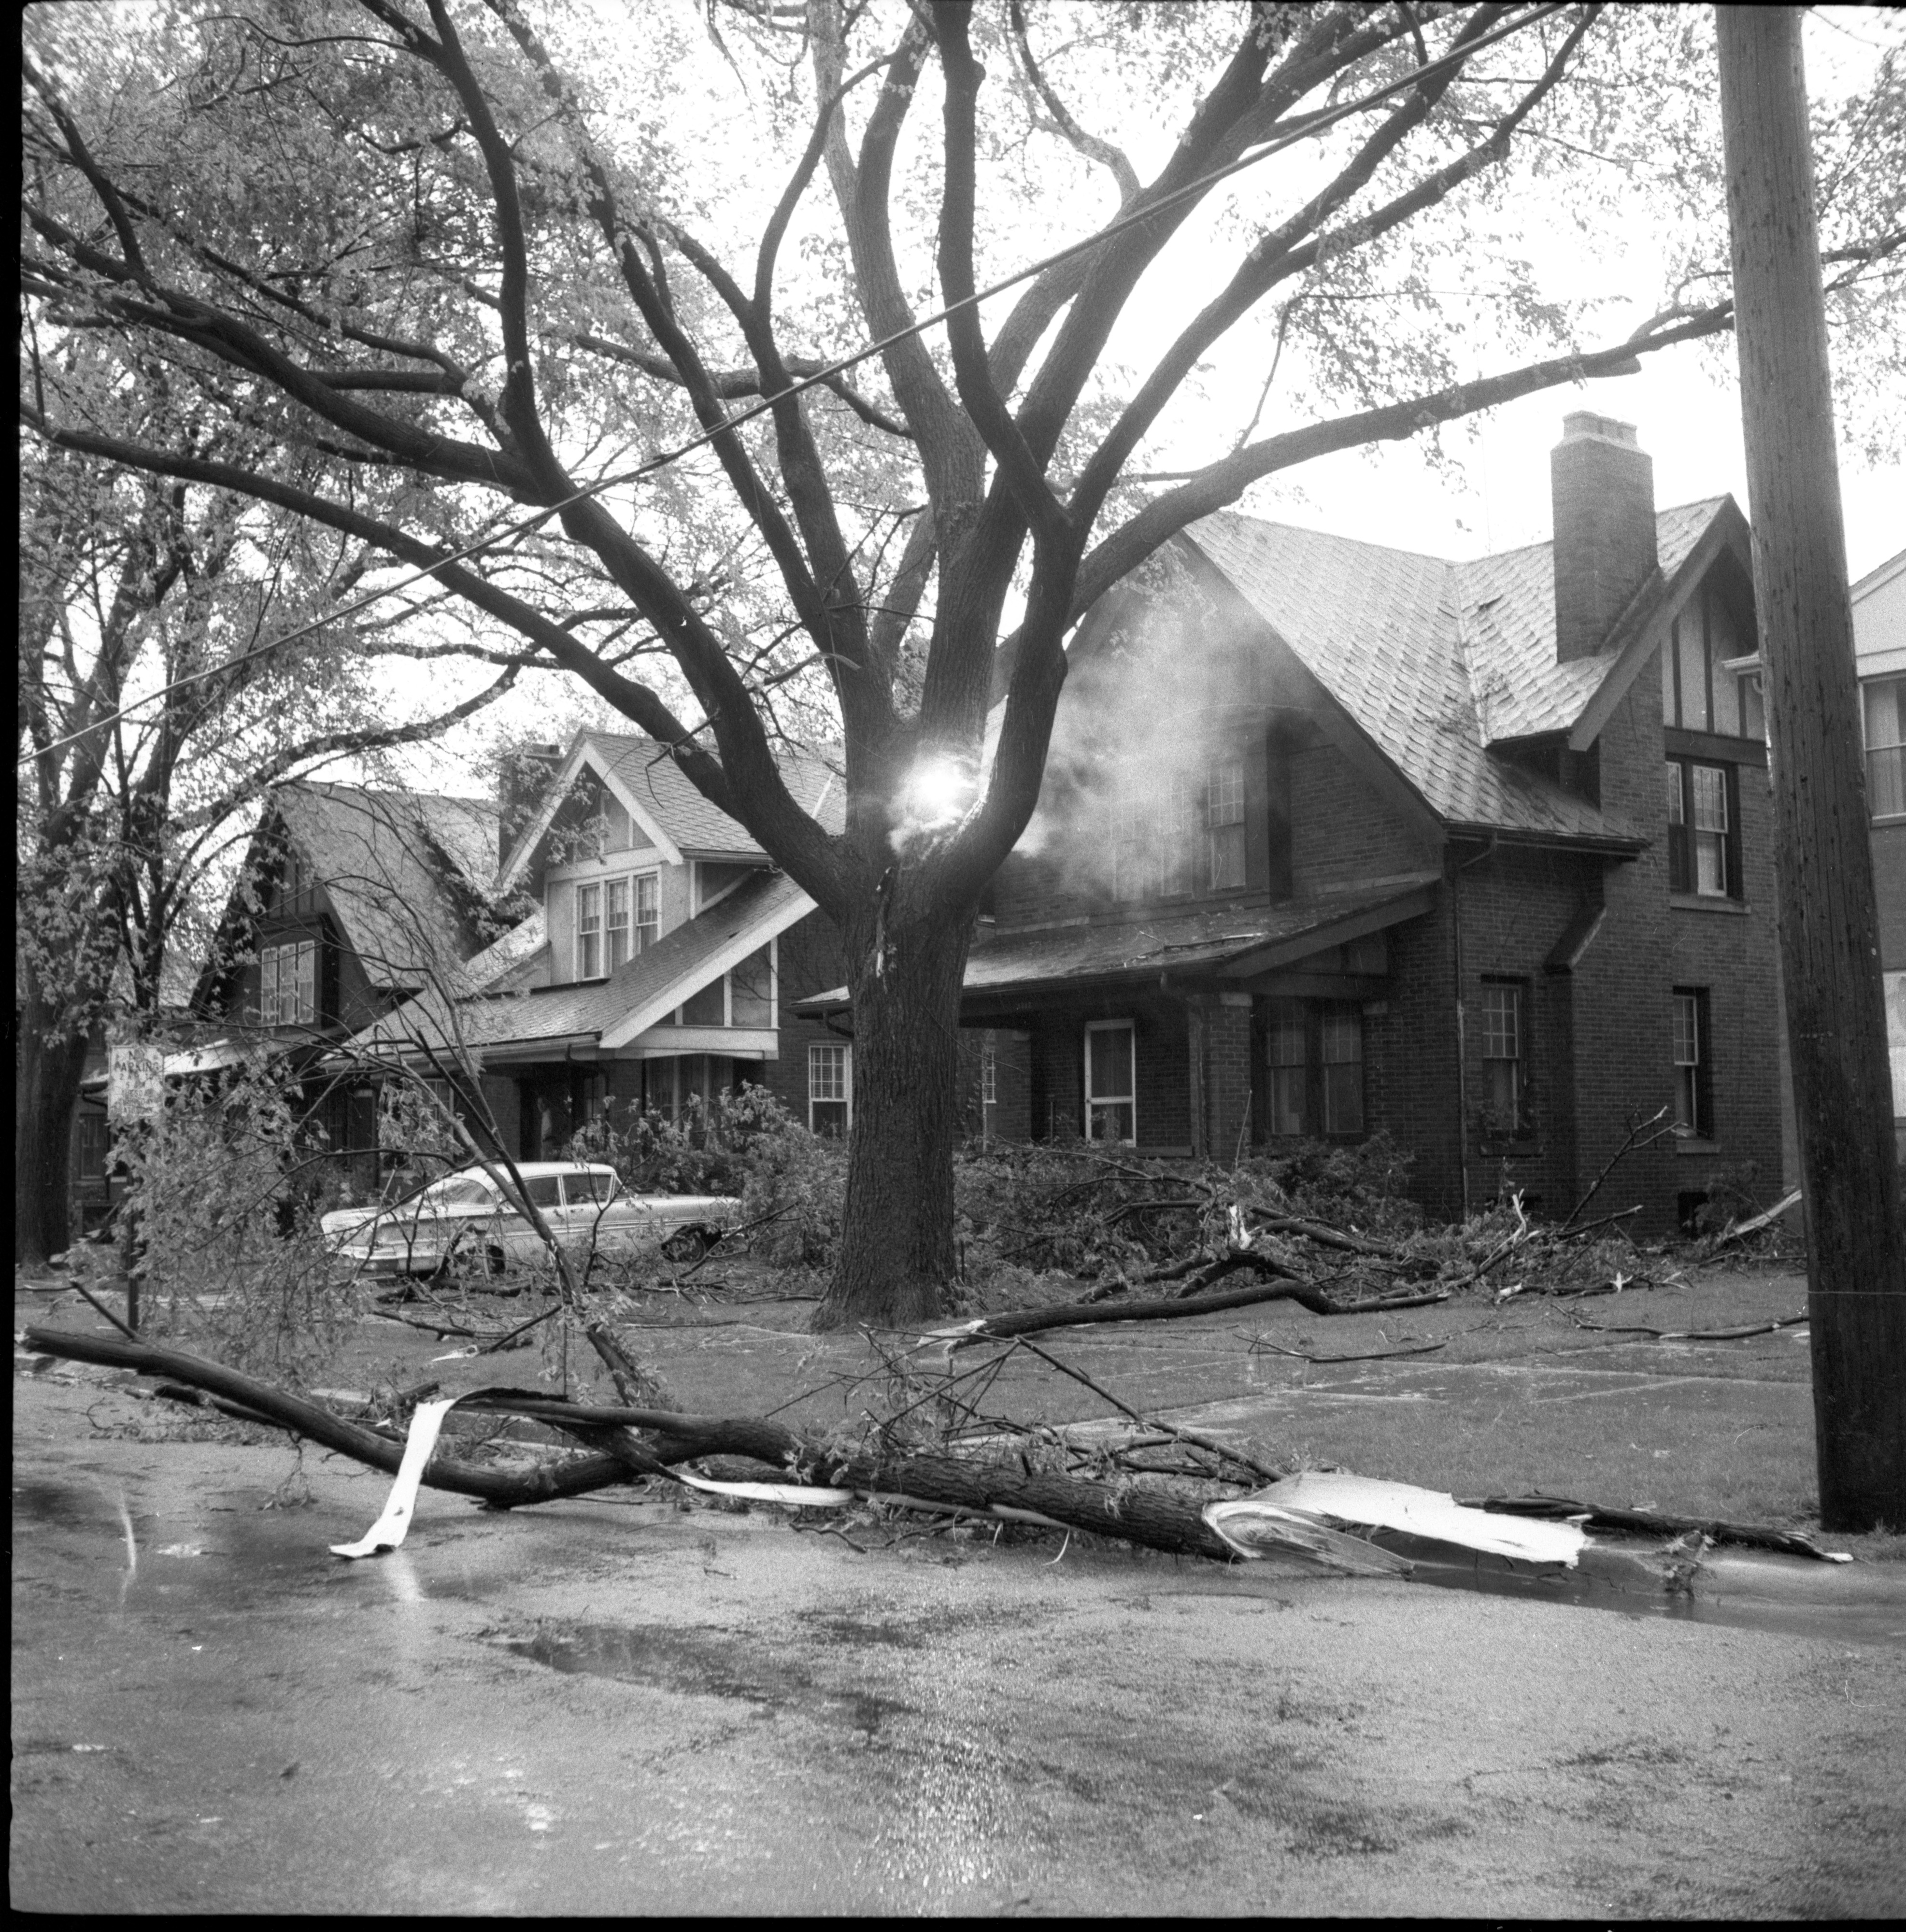 Downed Electrical Wire Burns In Tree After Windstorm, May 1959 image